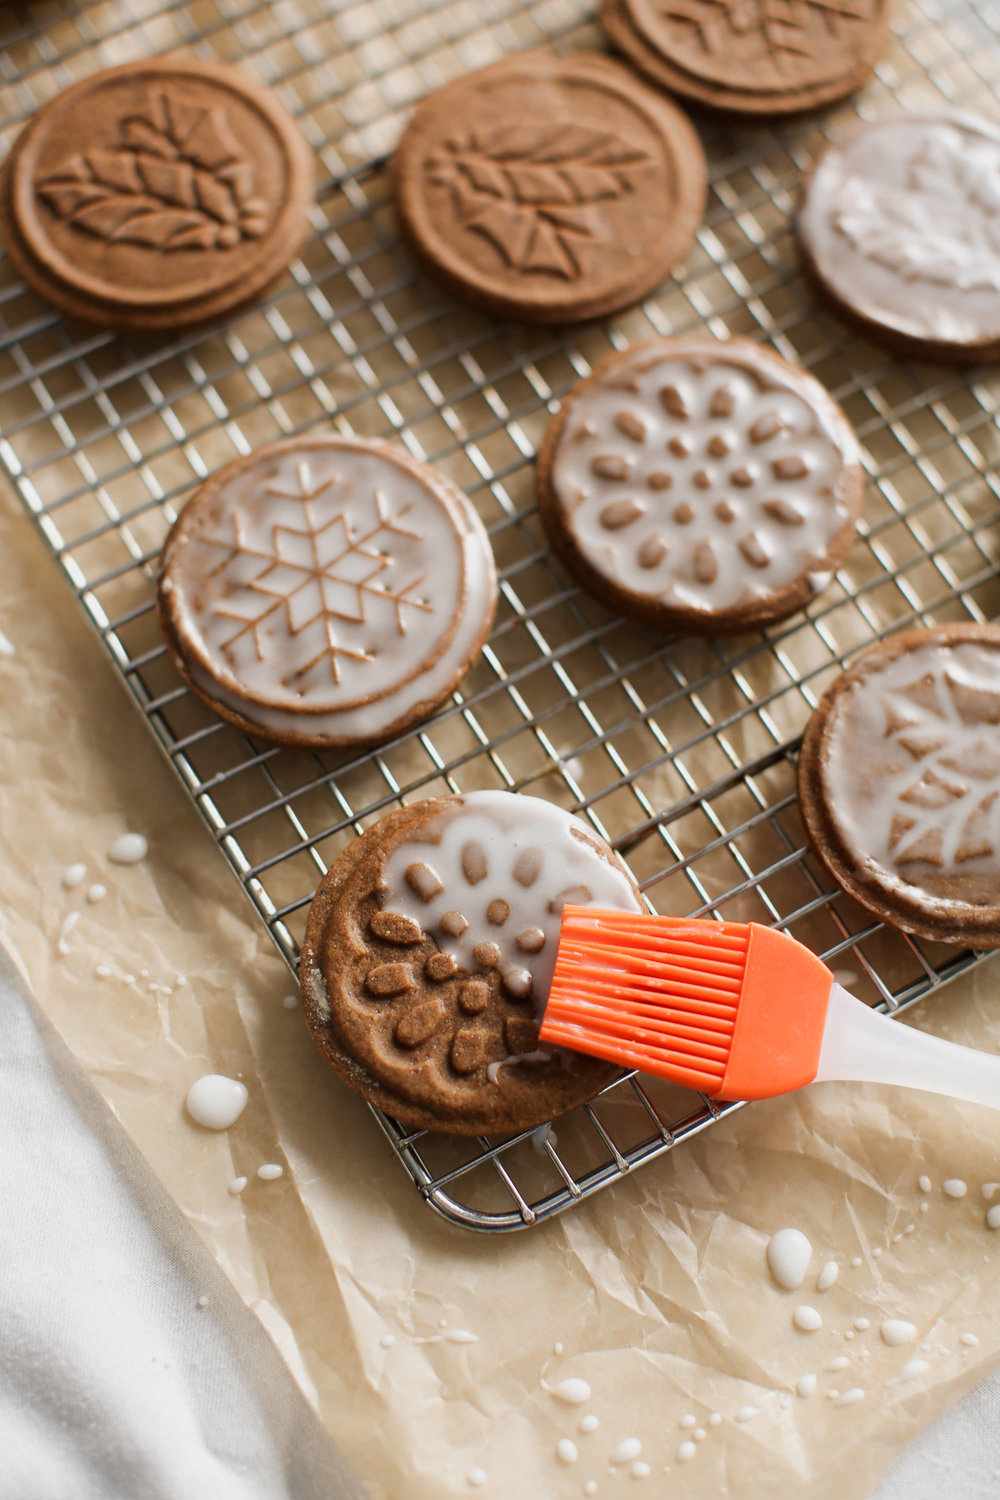 Glazing gingerbread cookies